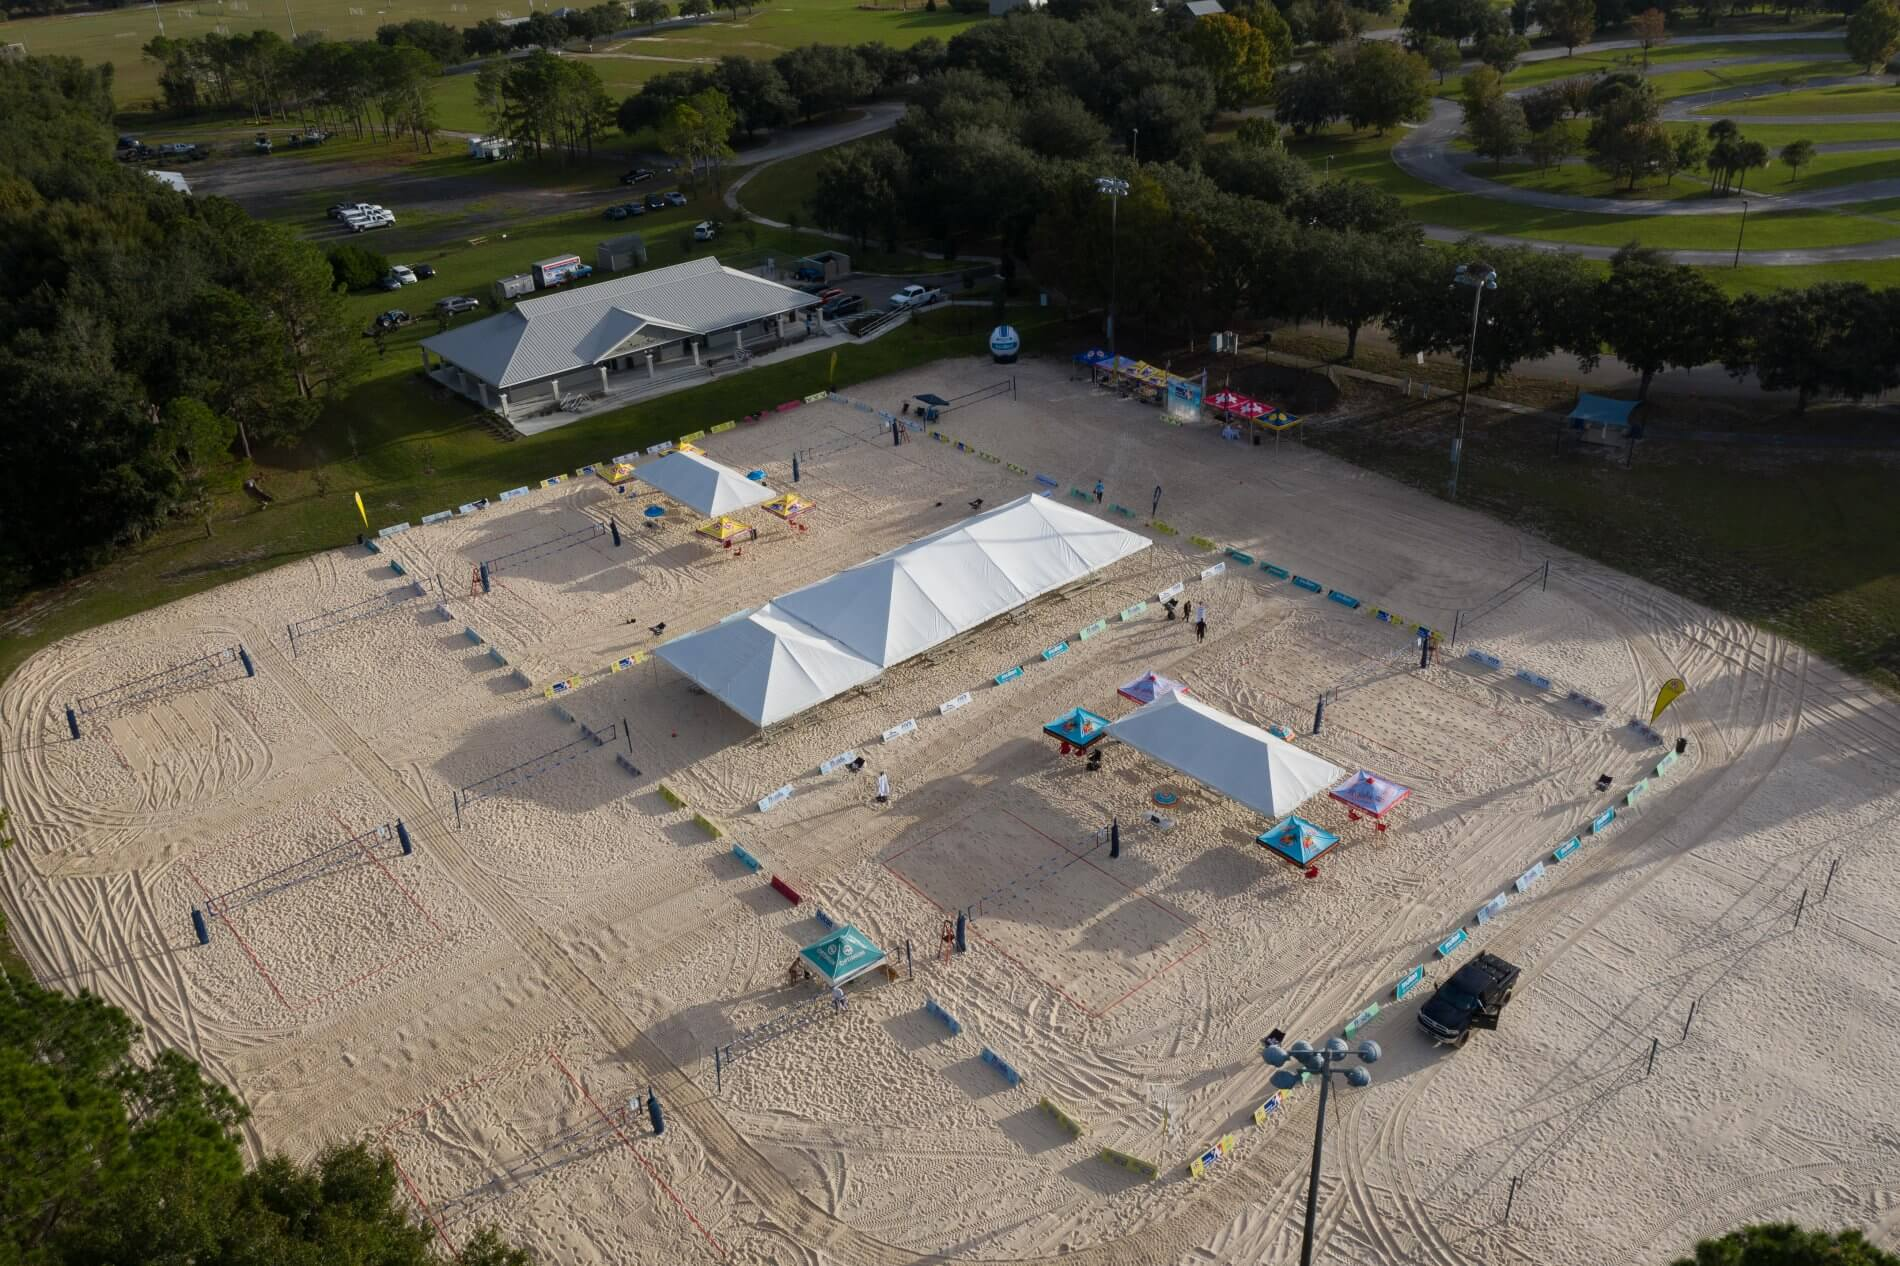 Arial view of Hickory Point Beach sand volleyball complex in Tavares, FL